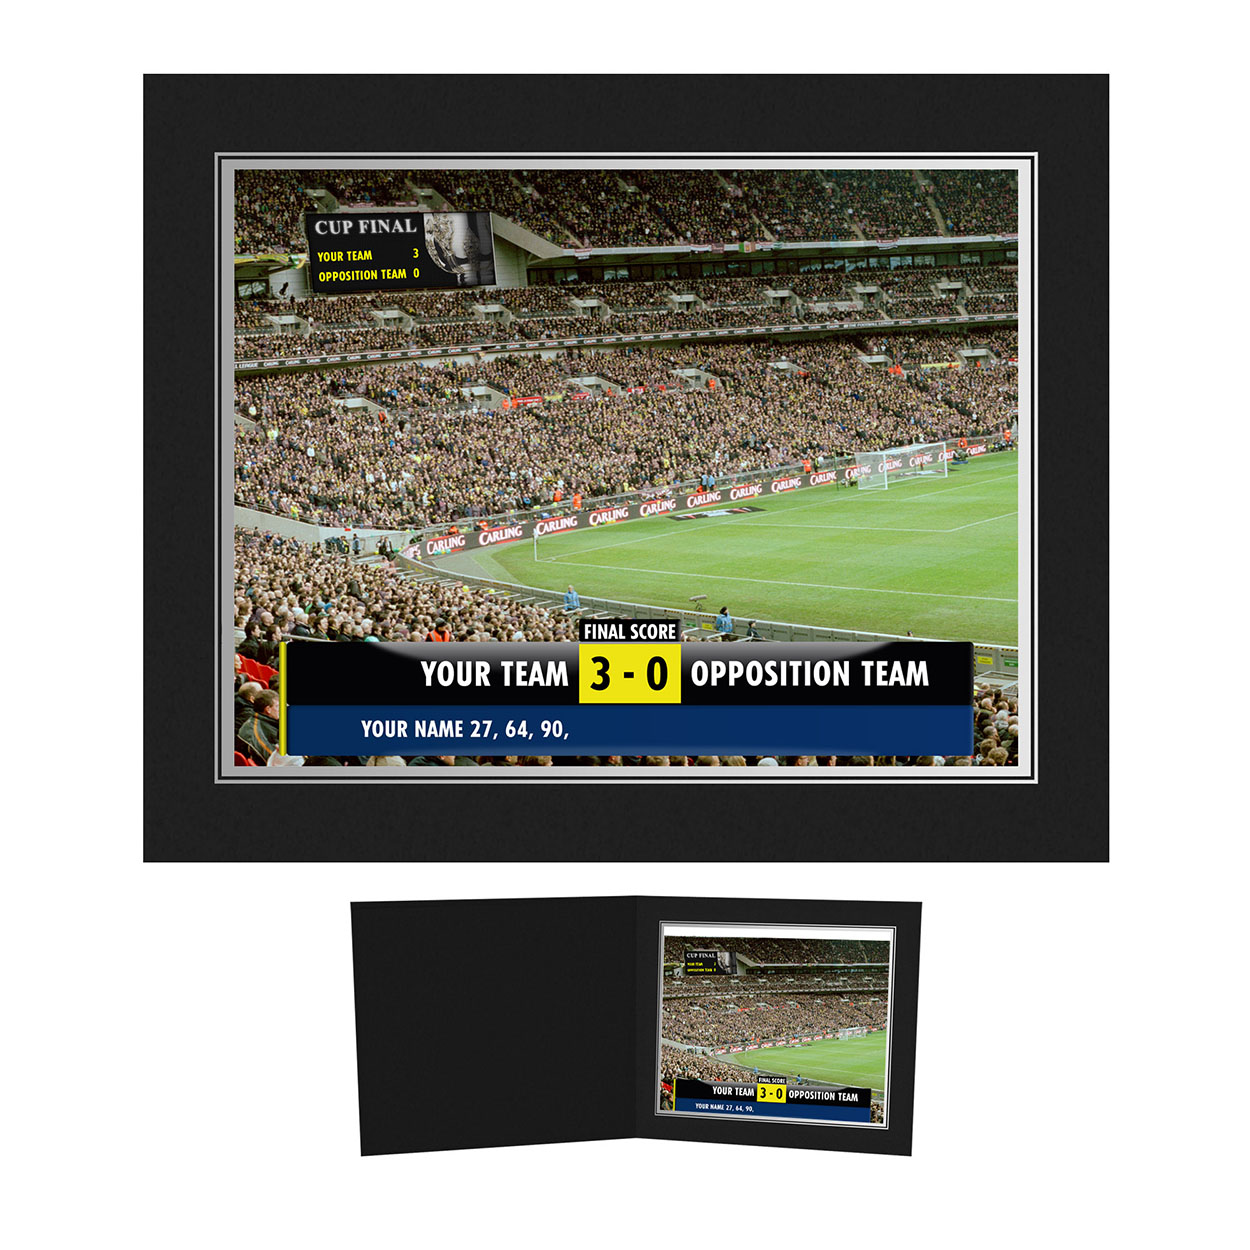 Personalised Football Scoreboard Photo - Presentation Folder